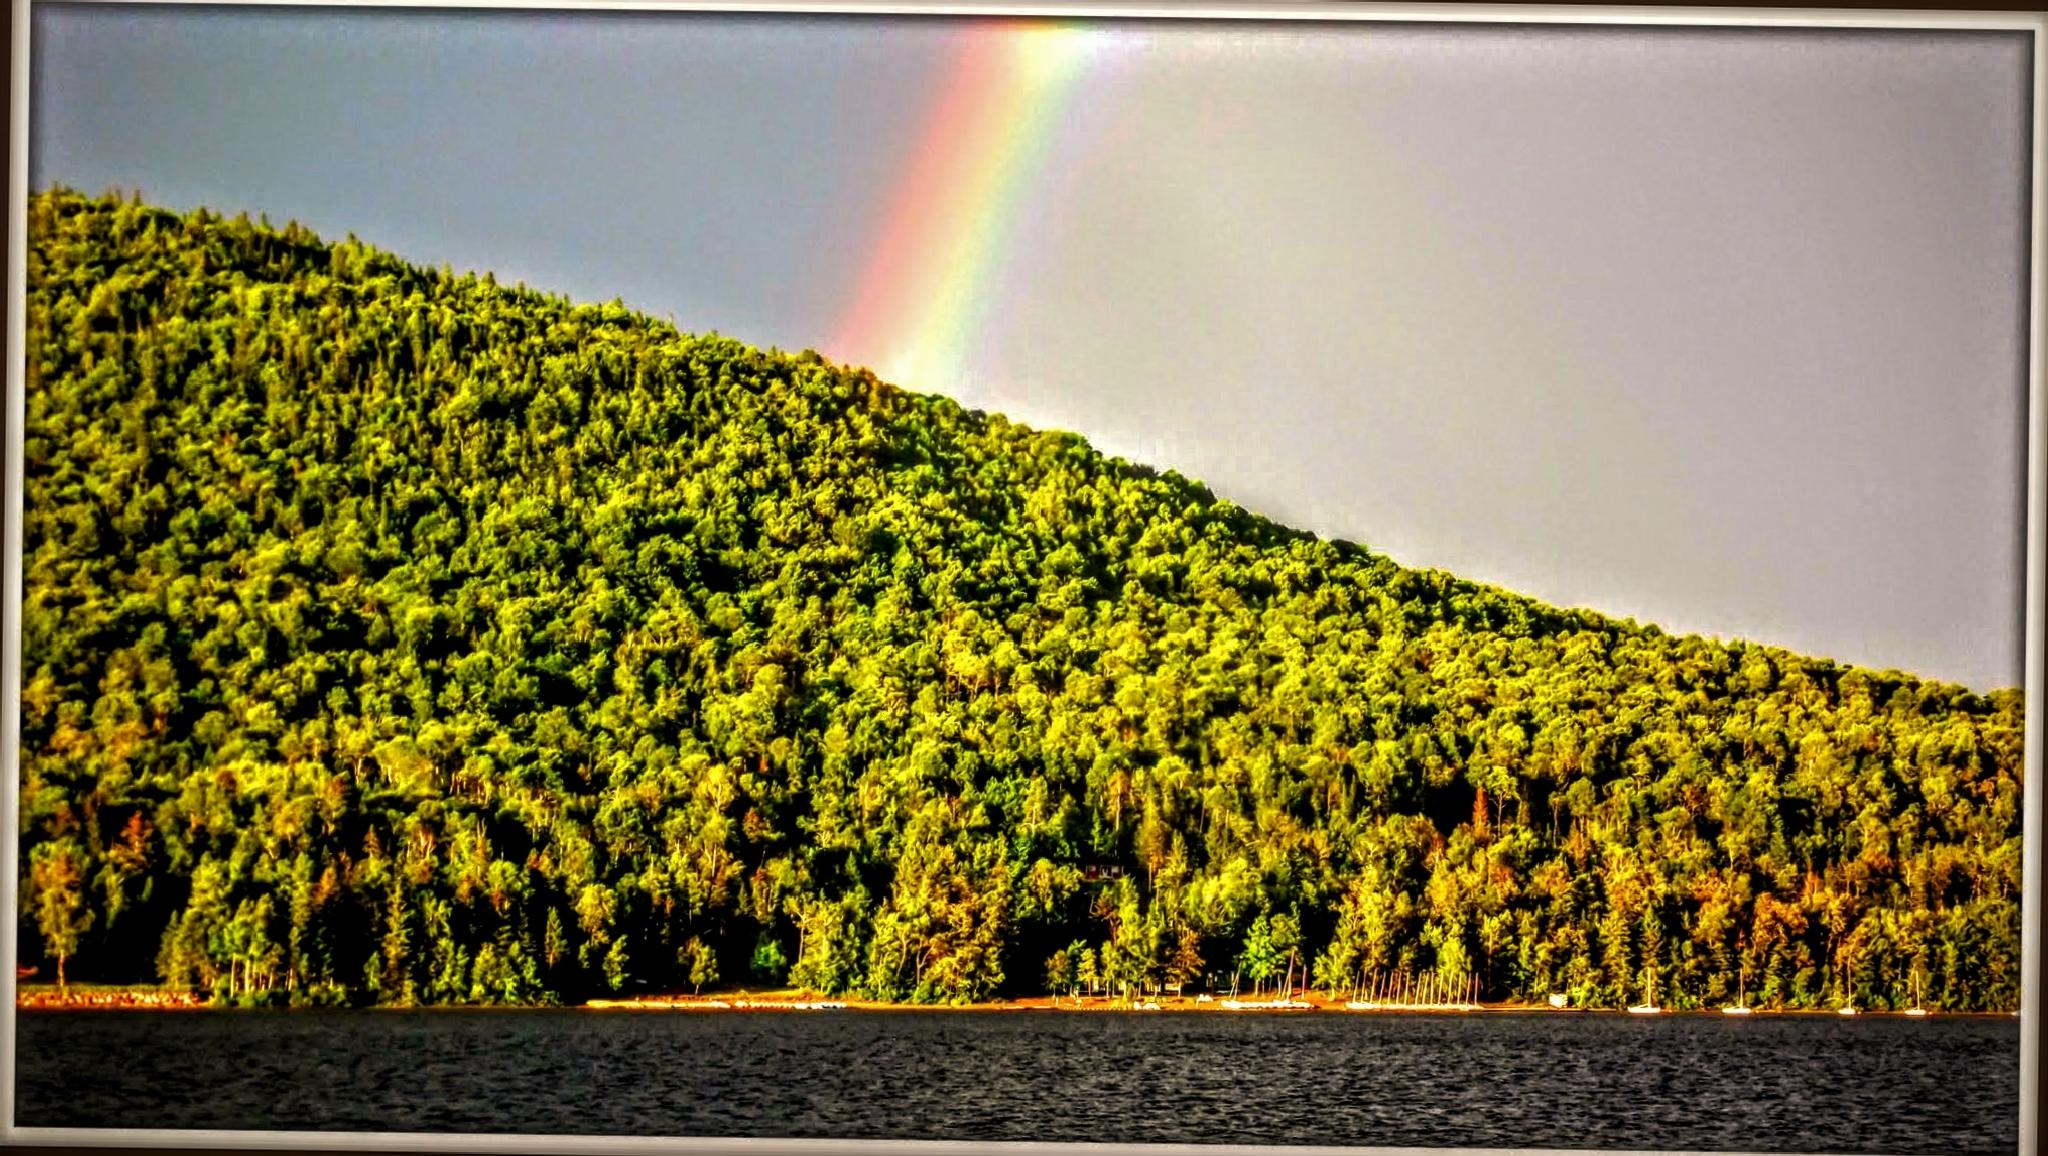 Rainbow for good time by real.michaud.5036